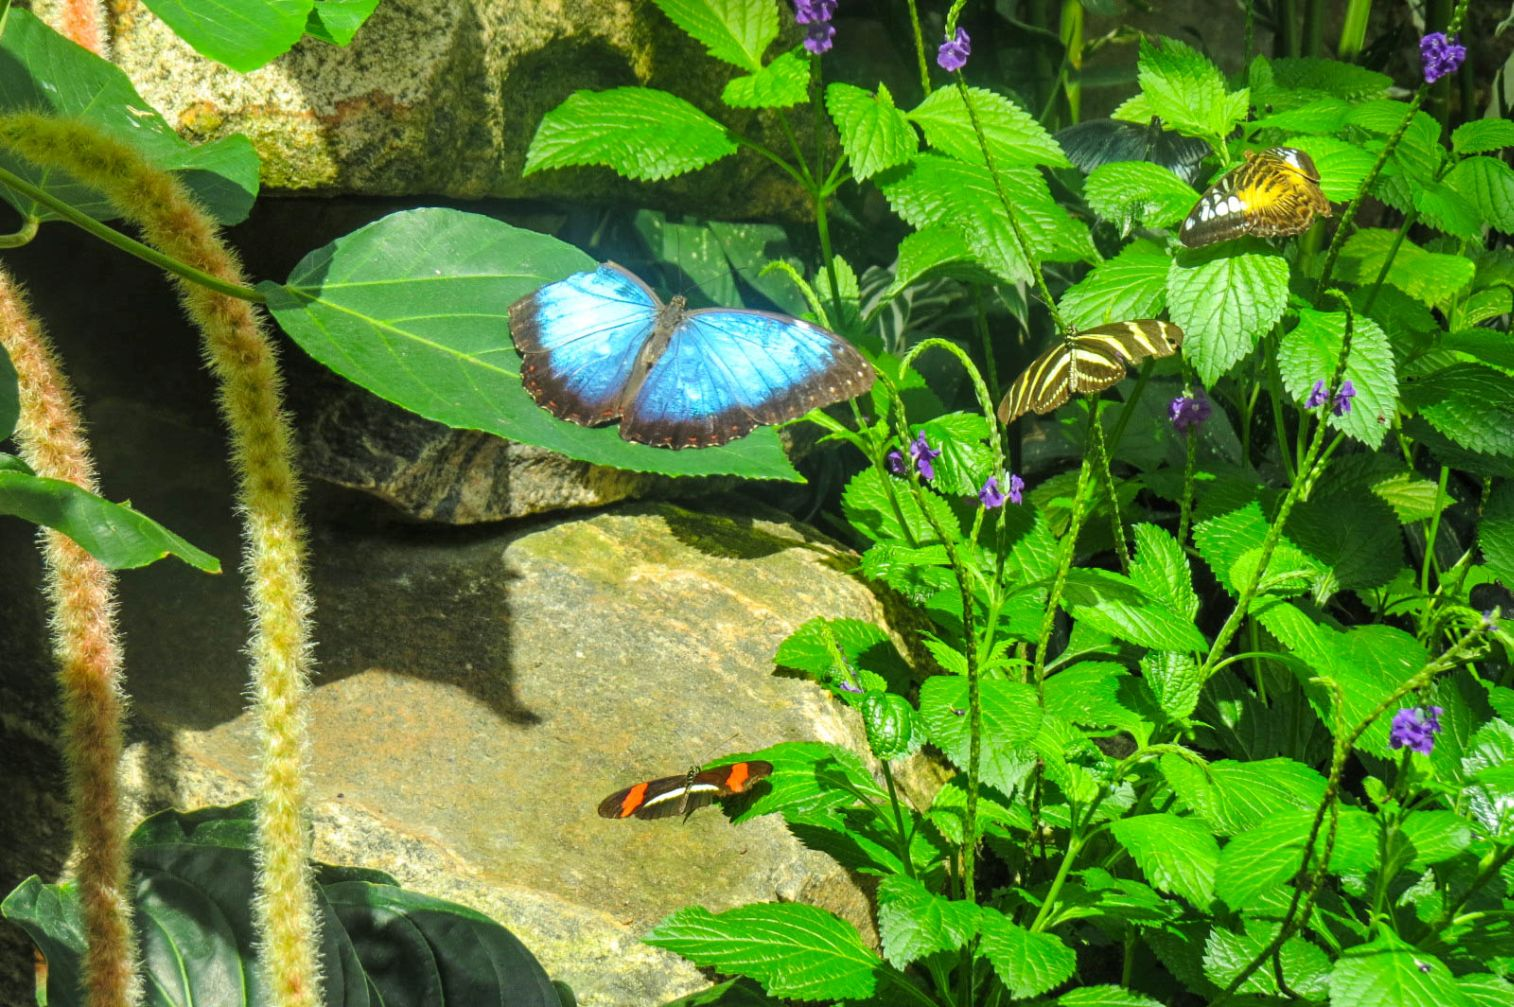 Niagara Parks' Butterfly Conservatory